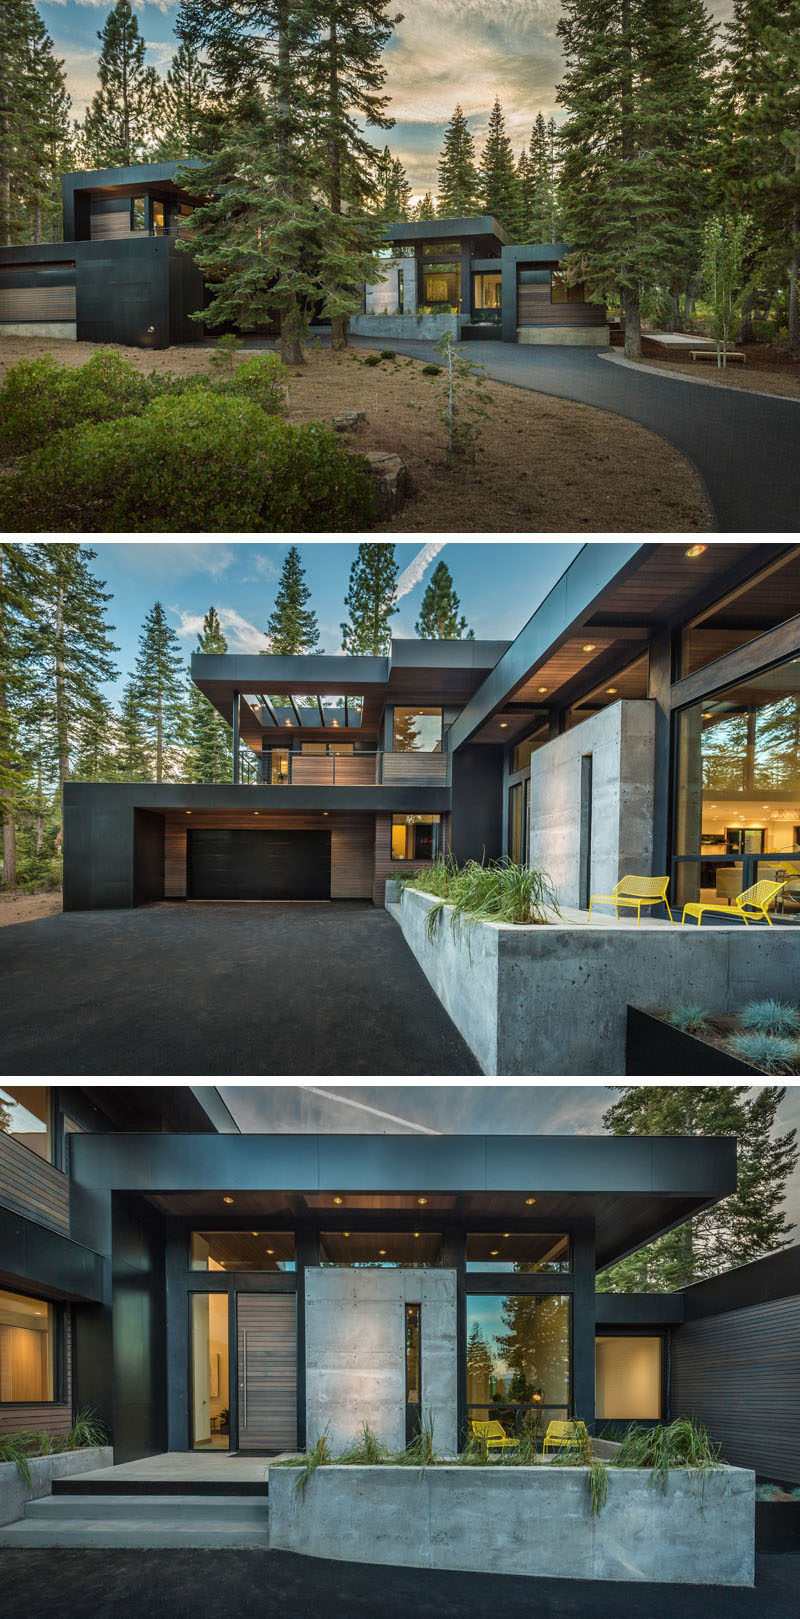 Big Beautiful Houses Pictures Lovely 18 Modern Houses In the forest